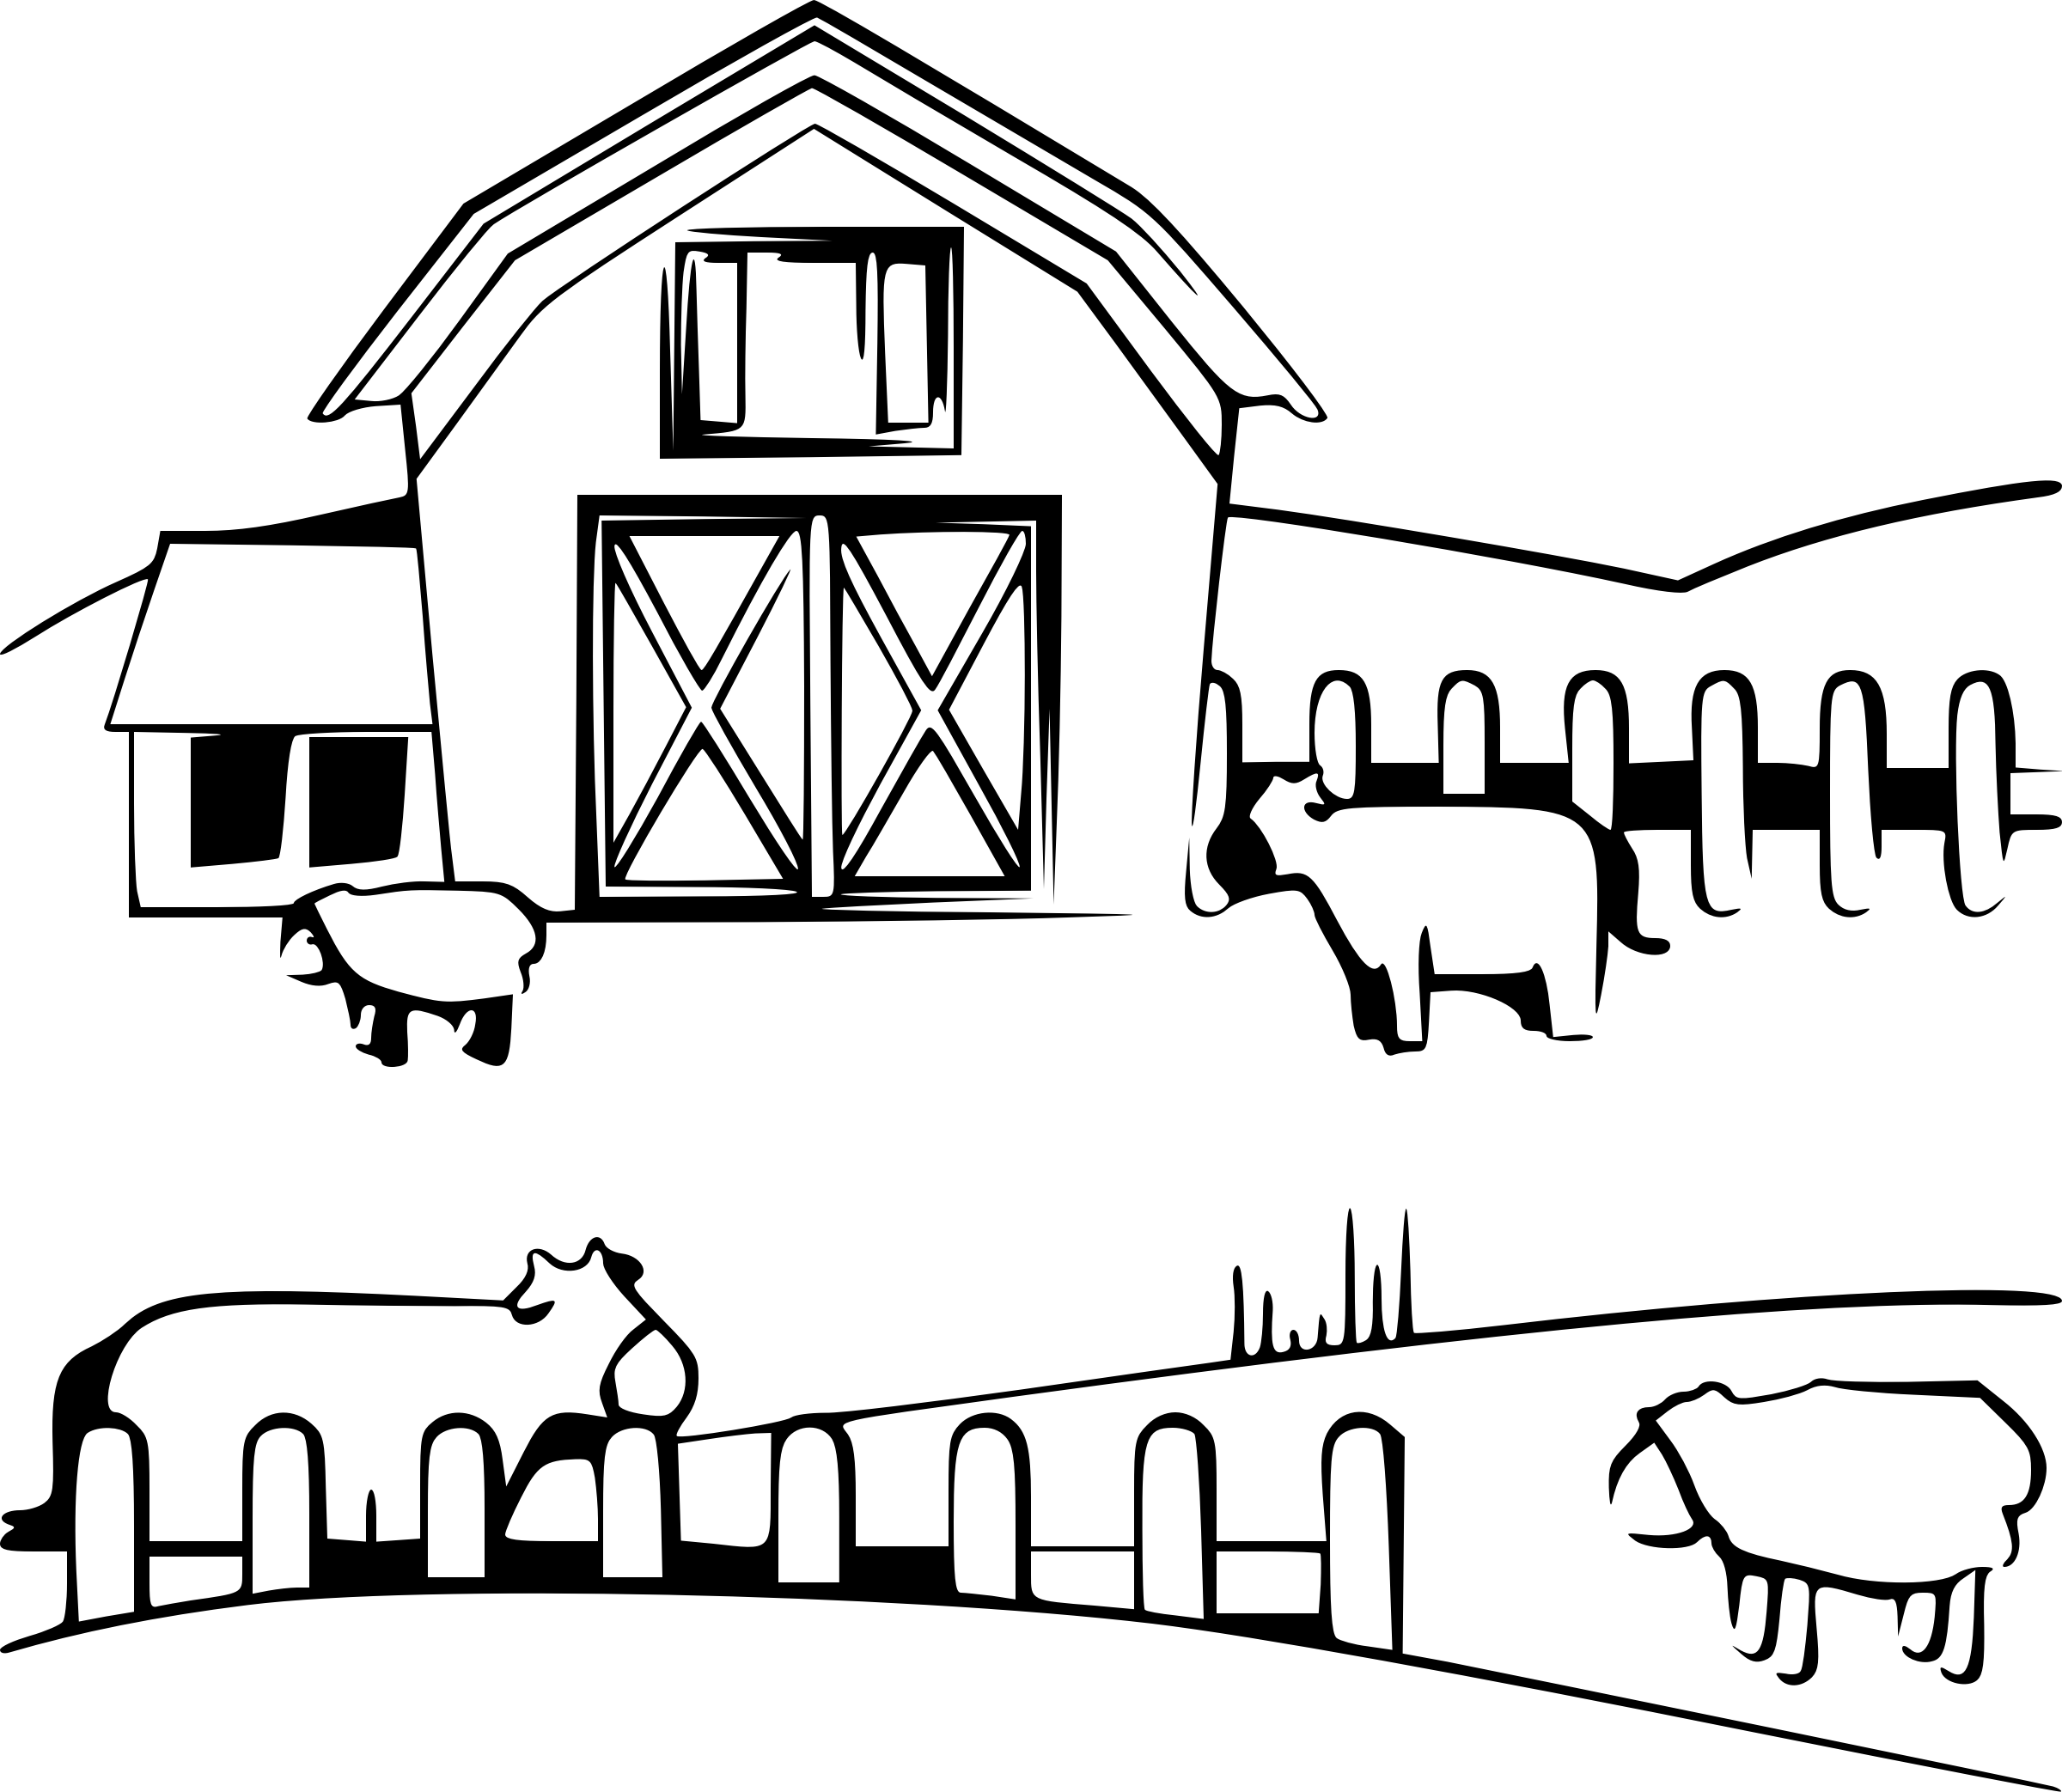 Farmers Clipart Black And White Farmers Black And White